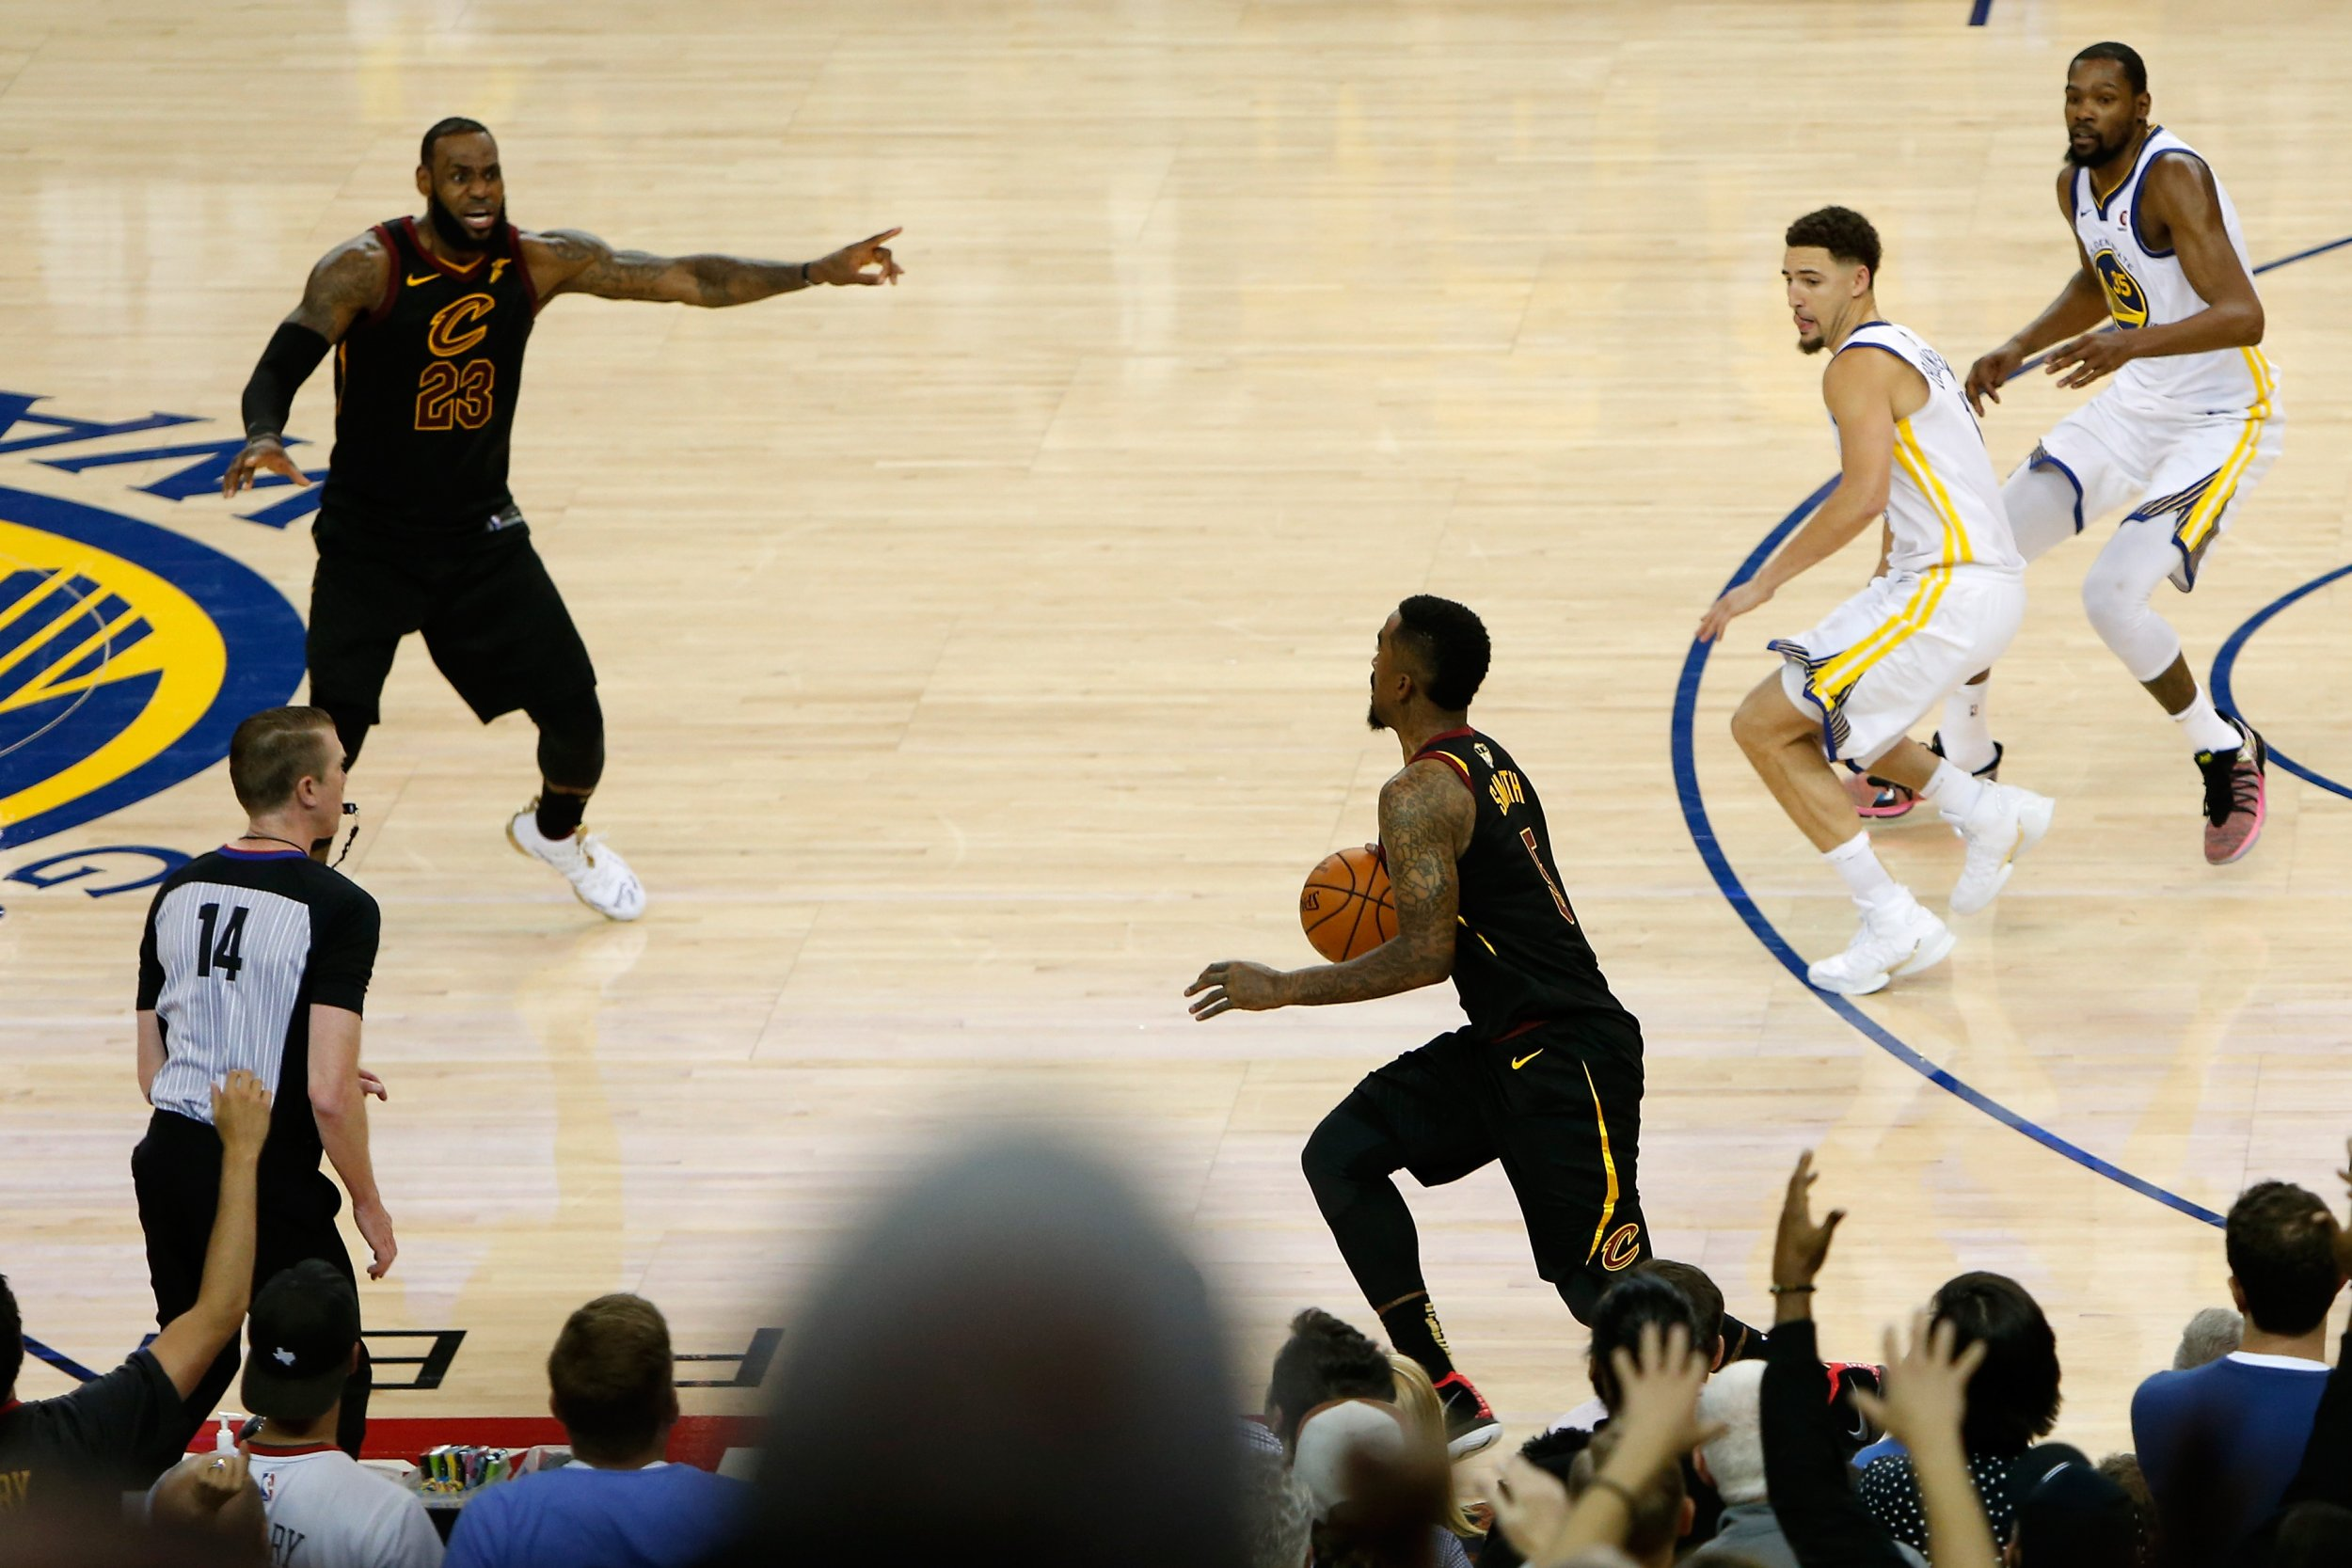 How Will LeBron James and Cavs Respond to the J.R. Smith Play in Game 2 of NBA Finals?